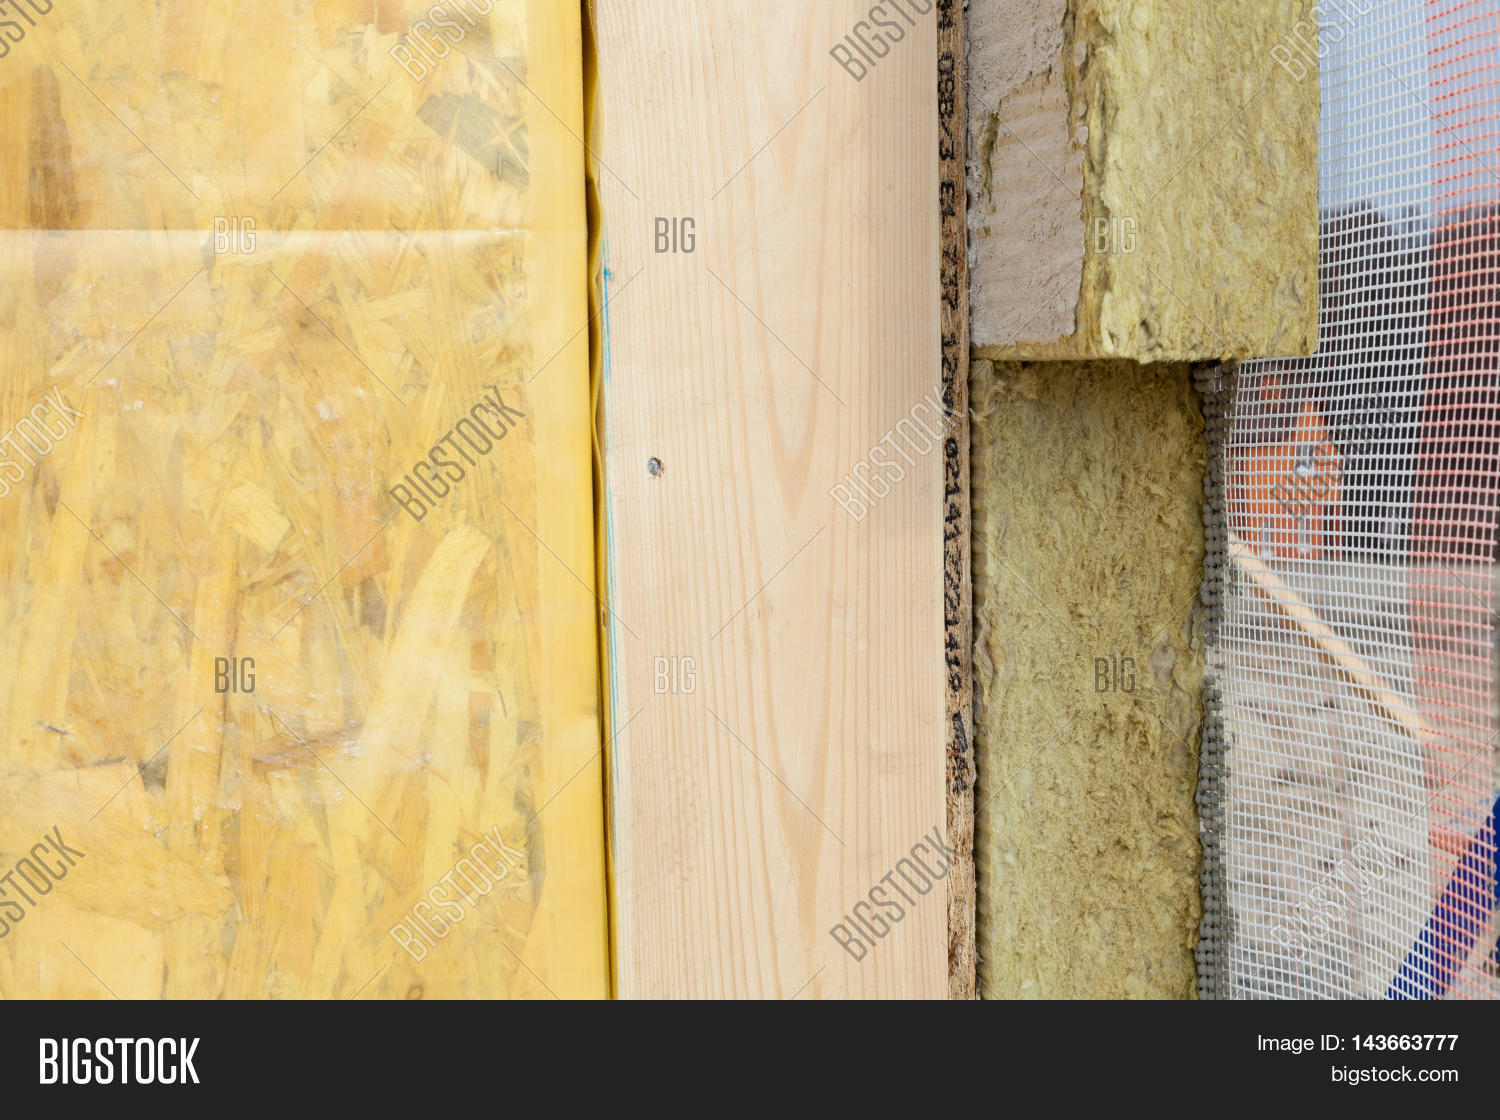 Closeup Structural Insulated Panels Image Photo Bigstock